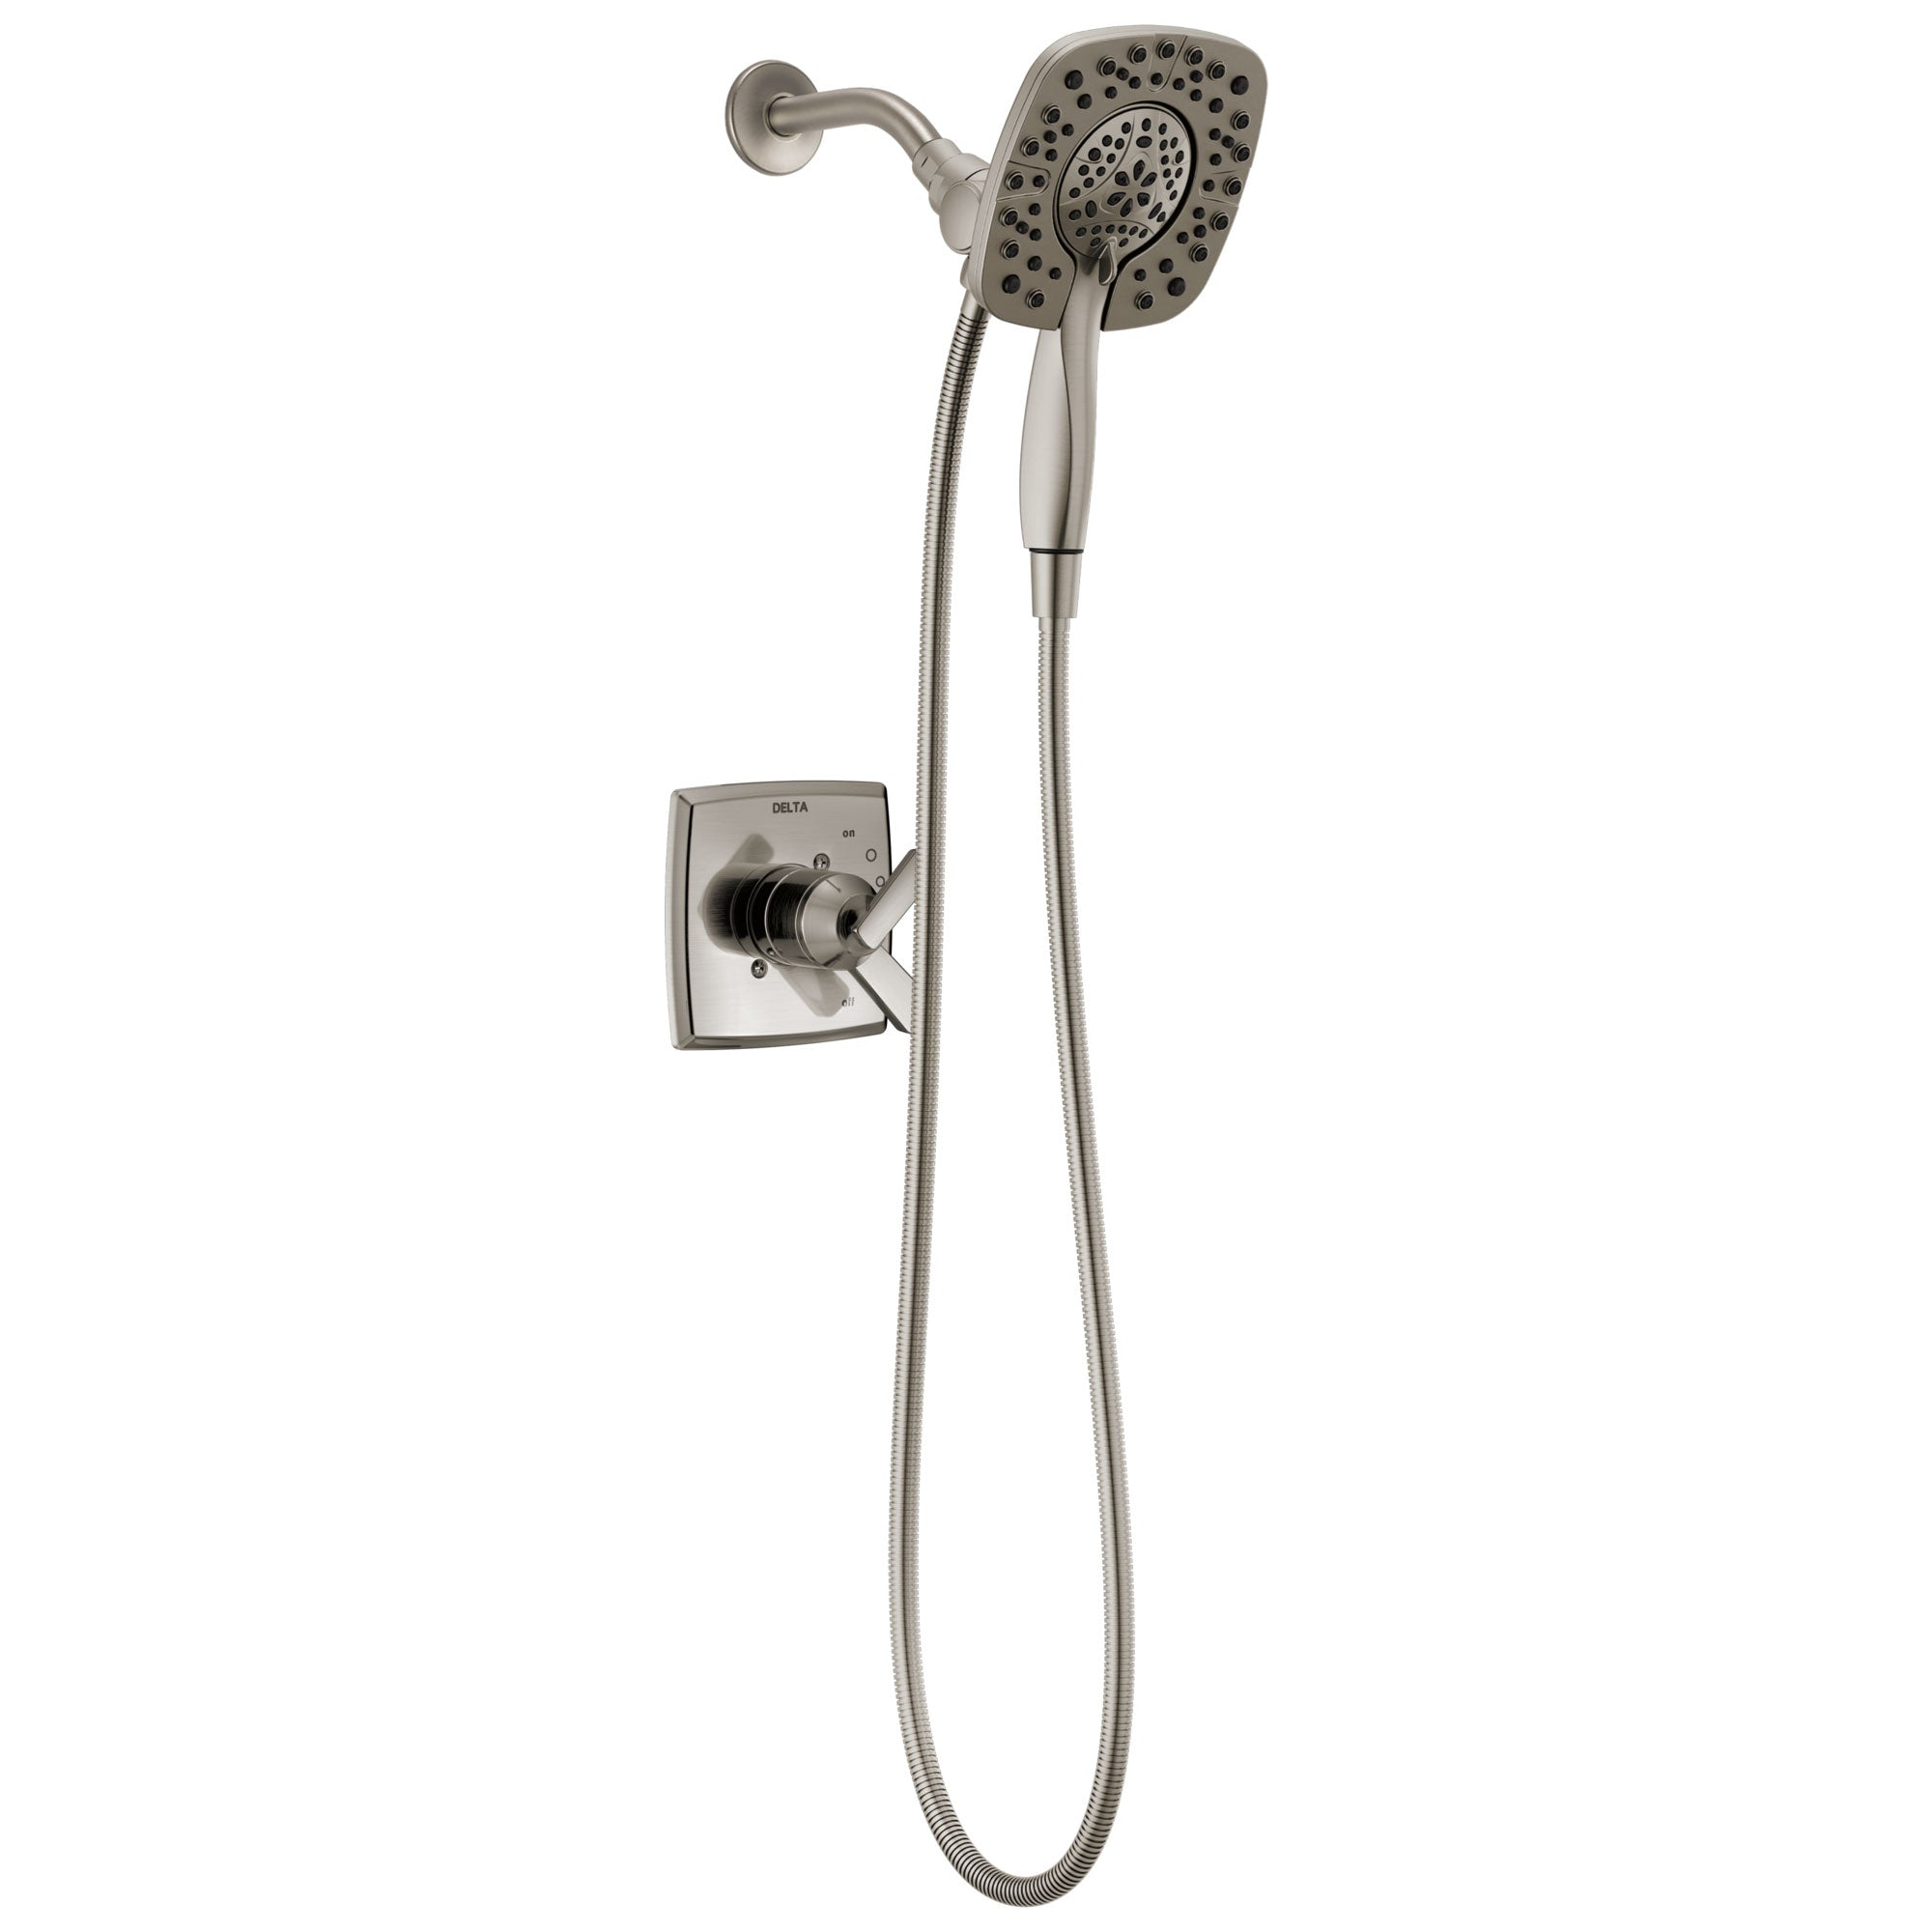 Delta Ashlyn Stainless Steel Finish Monitor 17 Series Shower Only Faucet with In2ition Two-in-One Hand Shower Spray INCLUDES Rough-in Valve with Stops D1133V